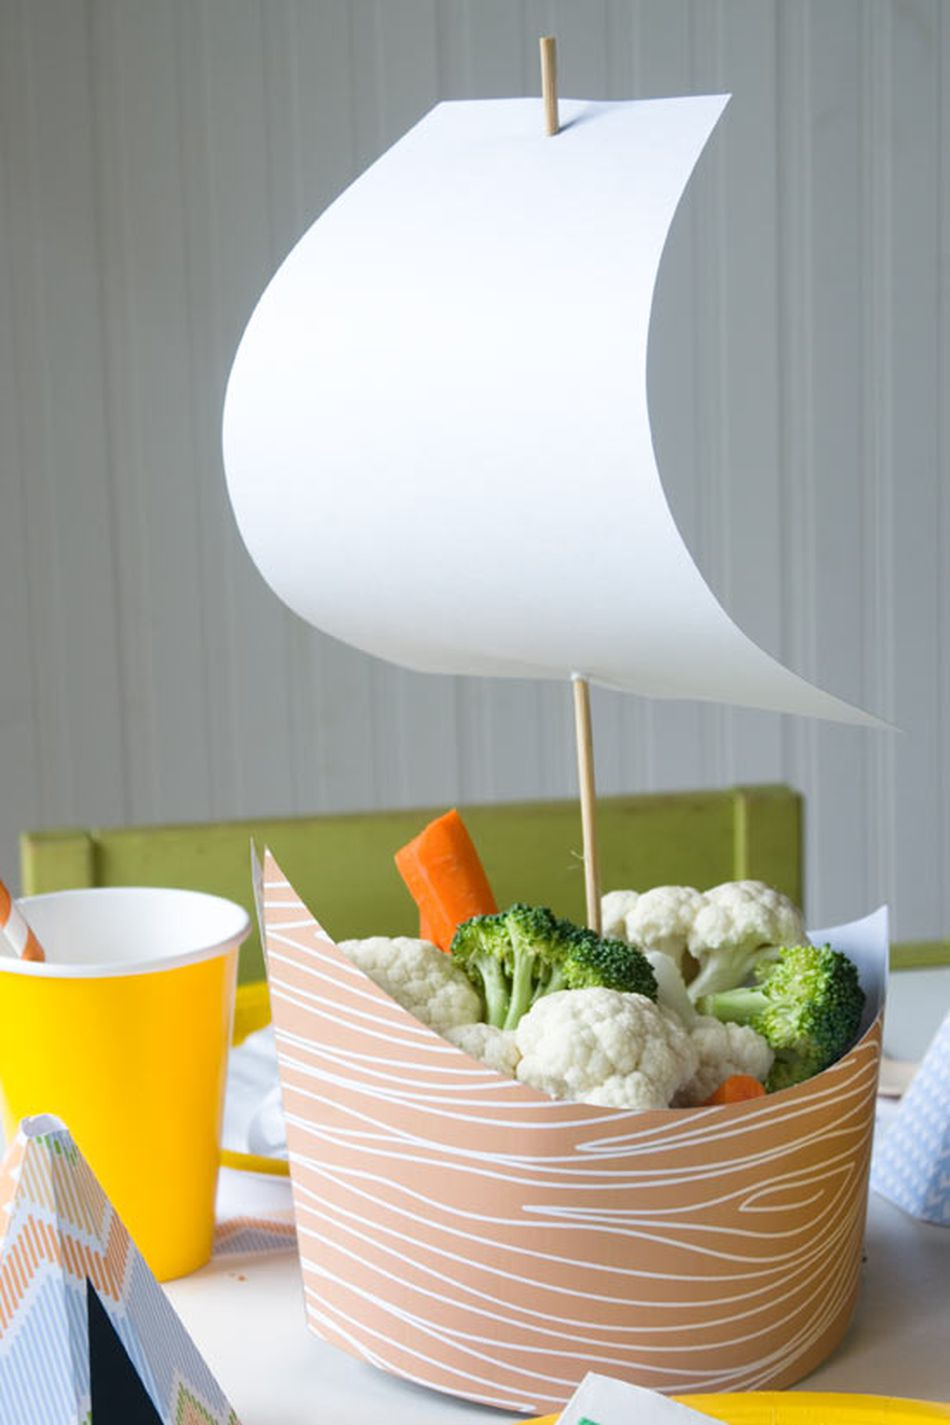 A paper pilgrim boat on a table.